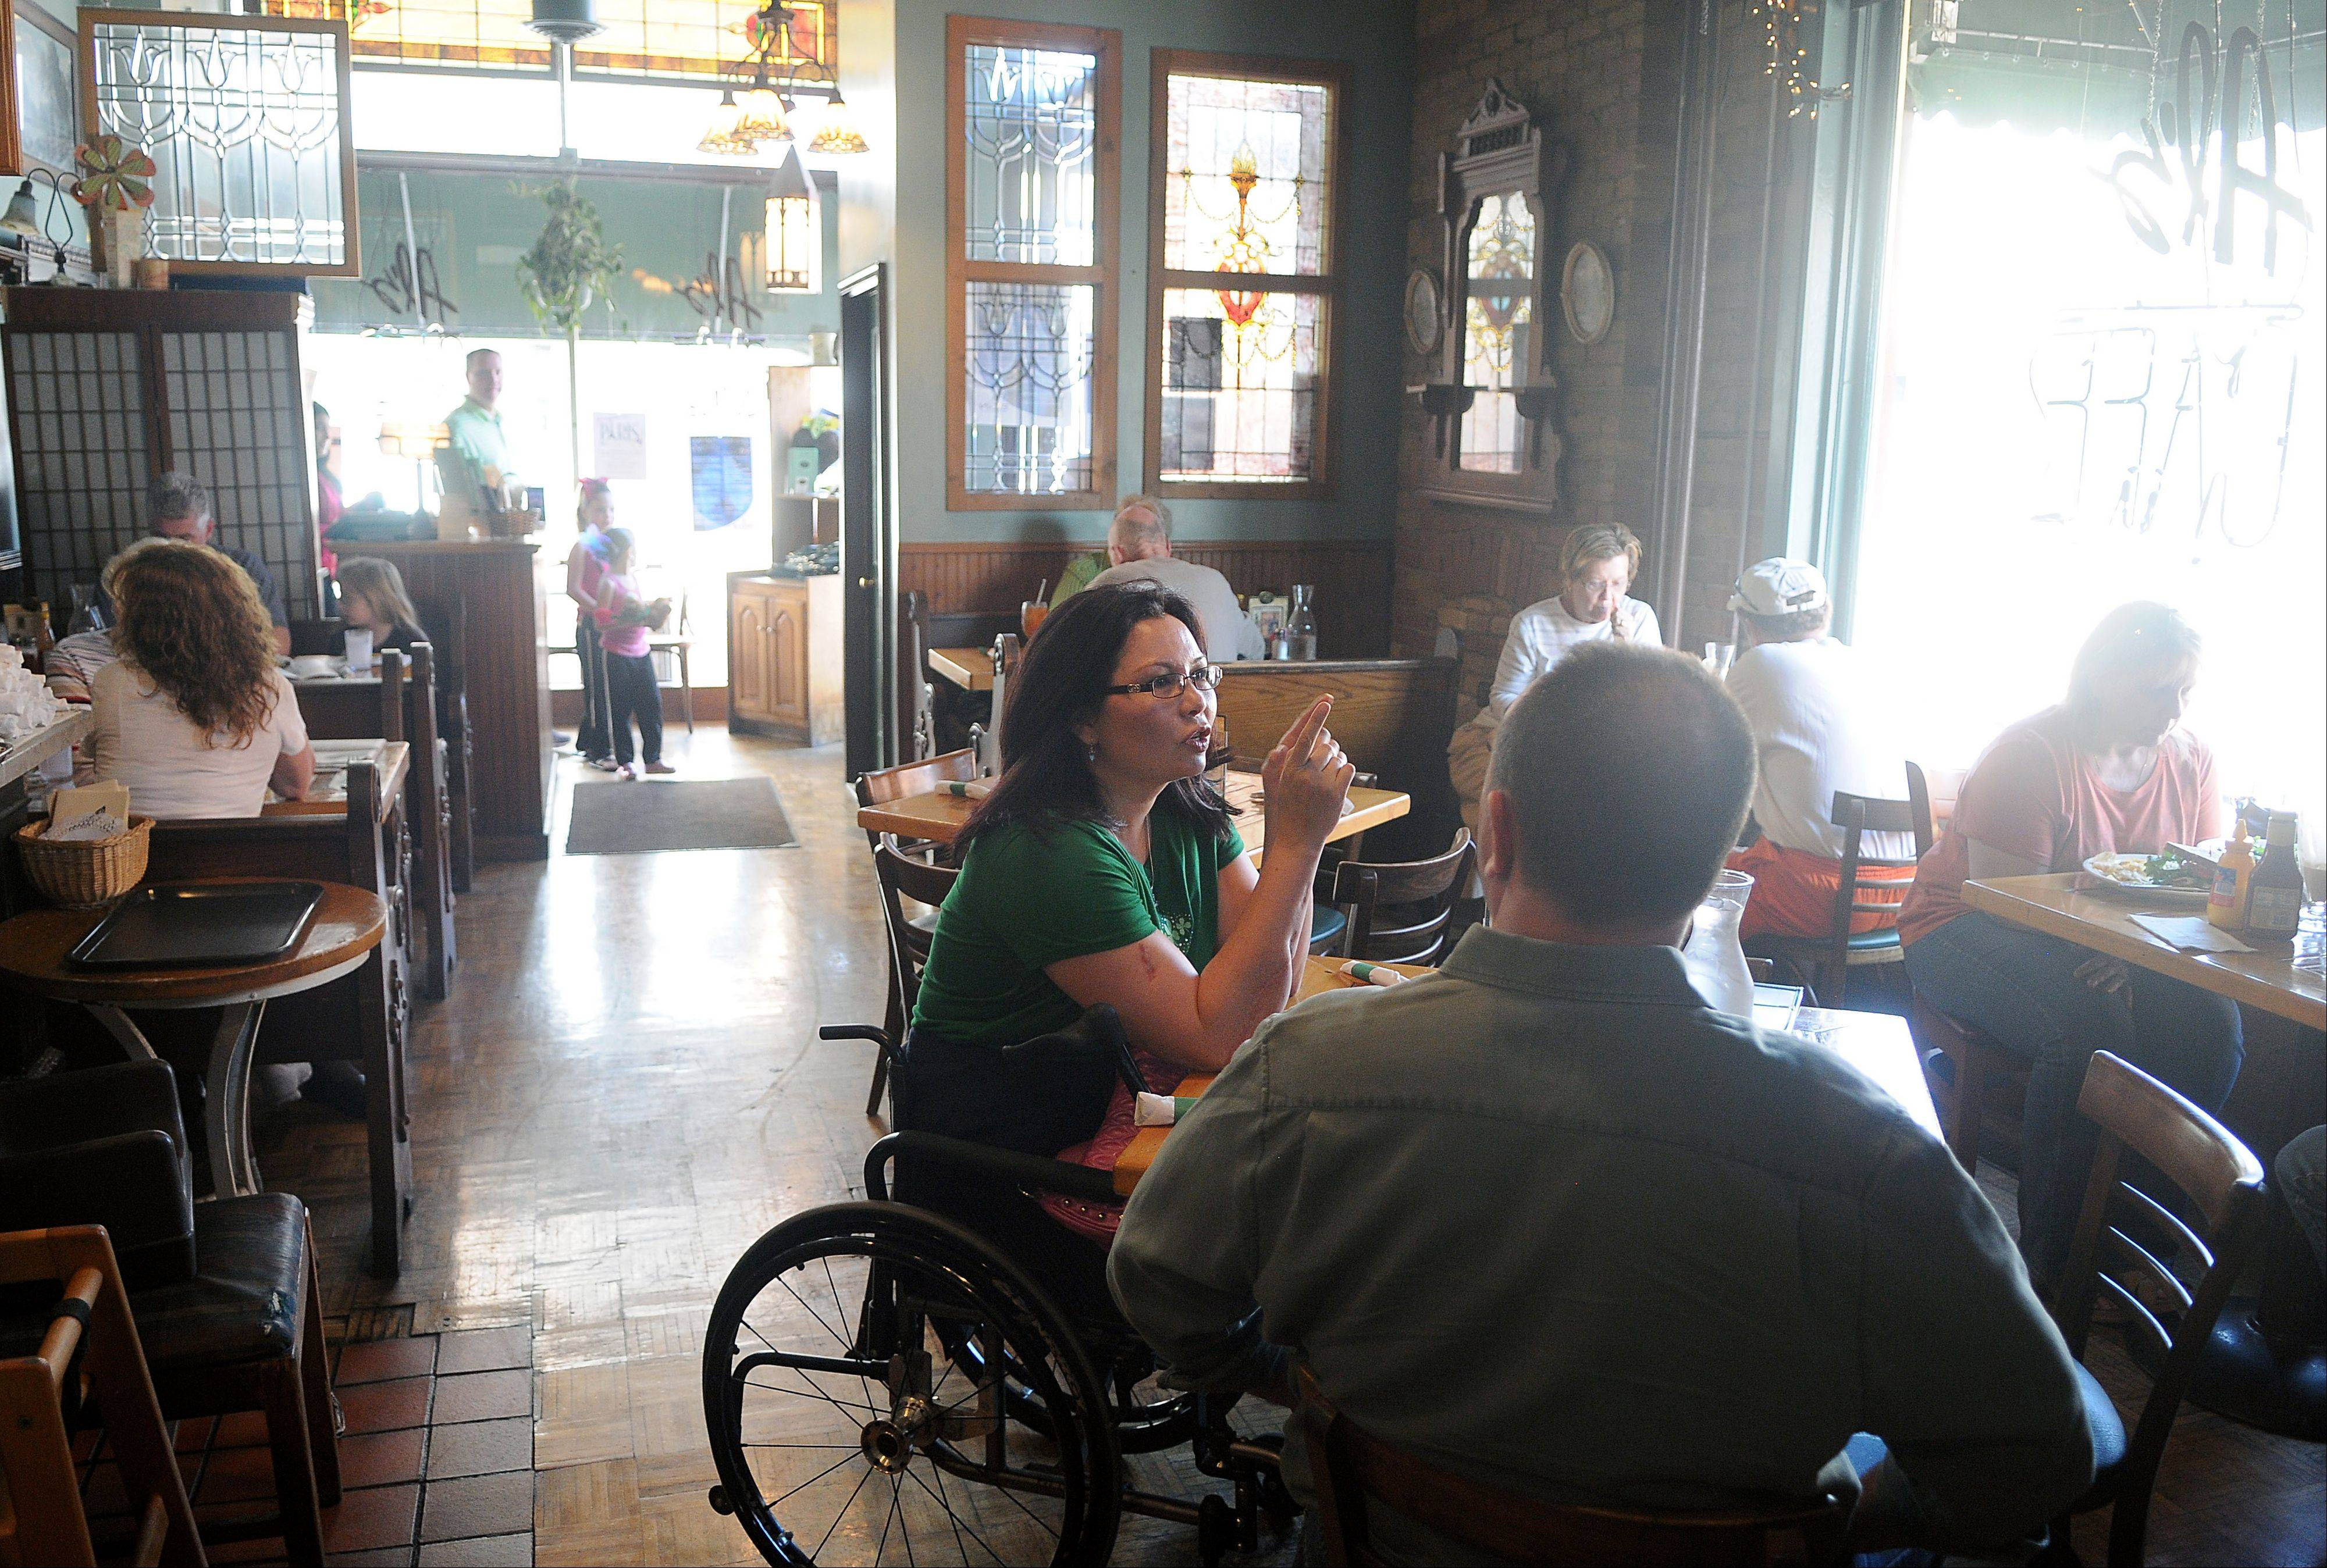 Tammy Duckworth, 8th Congressional District Democratic candidate, visited Al's Cafe in Elgin on Saturday with her husband, Bryan.